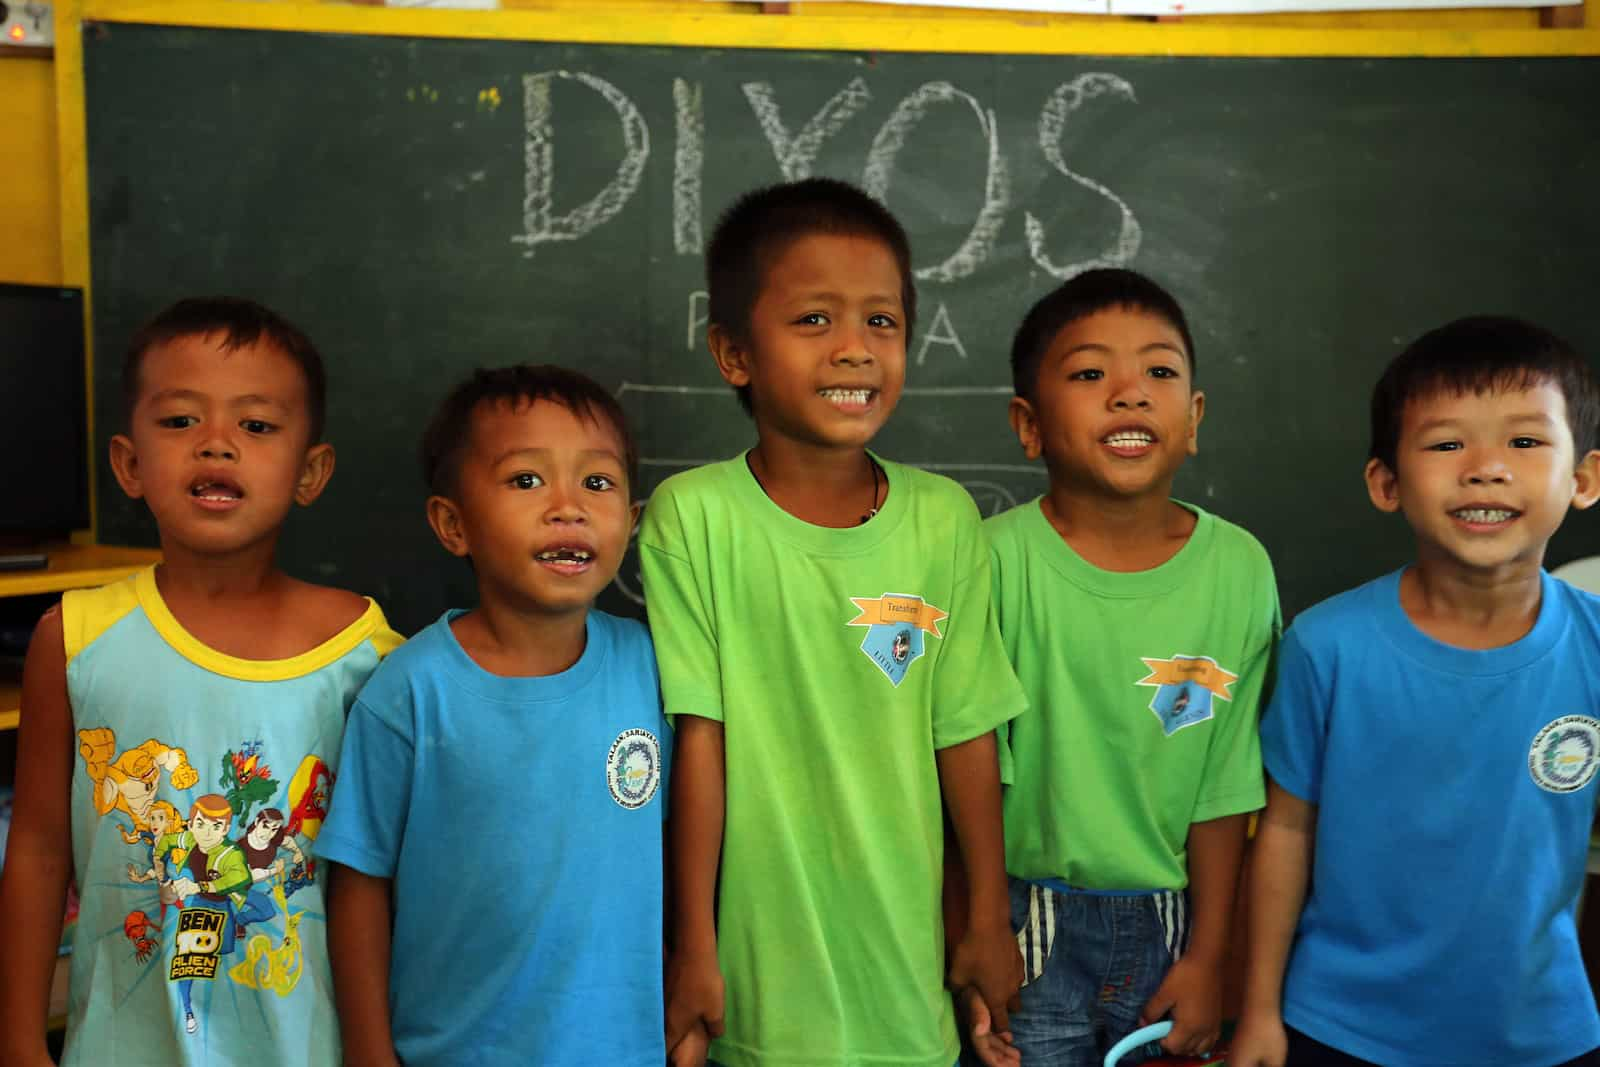 A group of five young boys stand, smiling, in front of a chalk board.